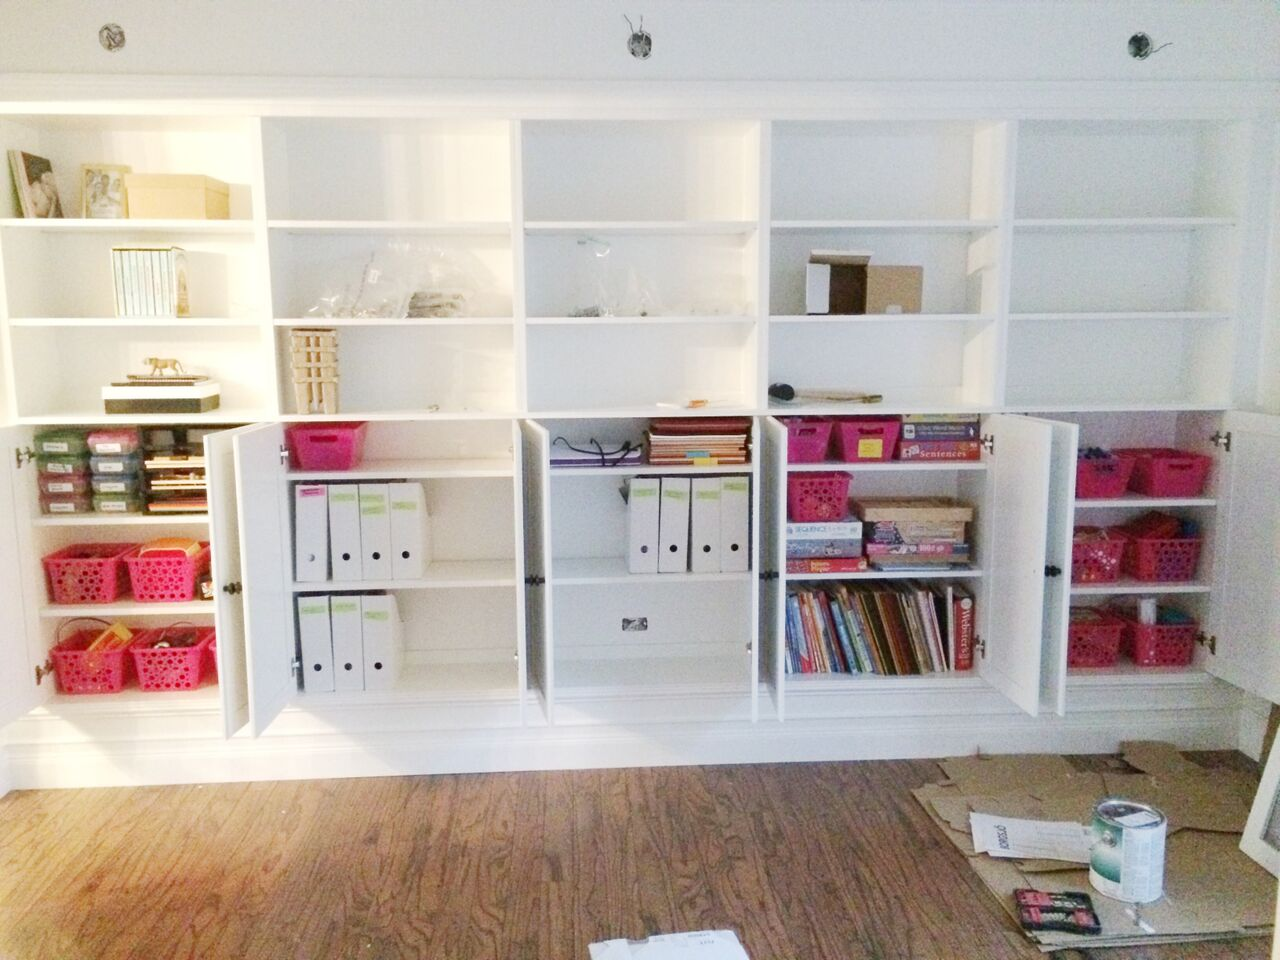 Wonderful image of 15 step fifteen put on doors and knobs put the doors on the ikea  with #9F2C34 color and 1280x960 pixels